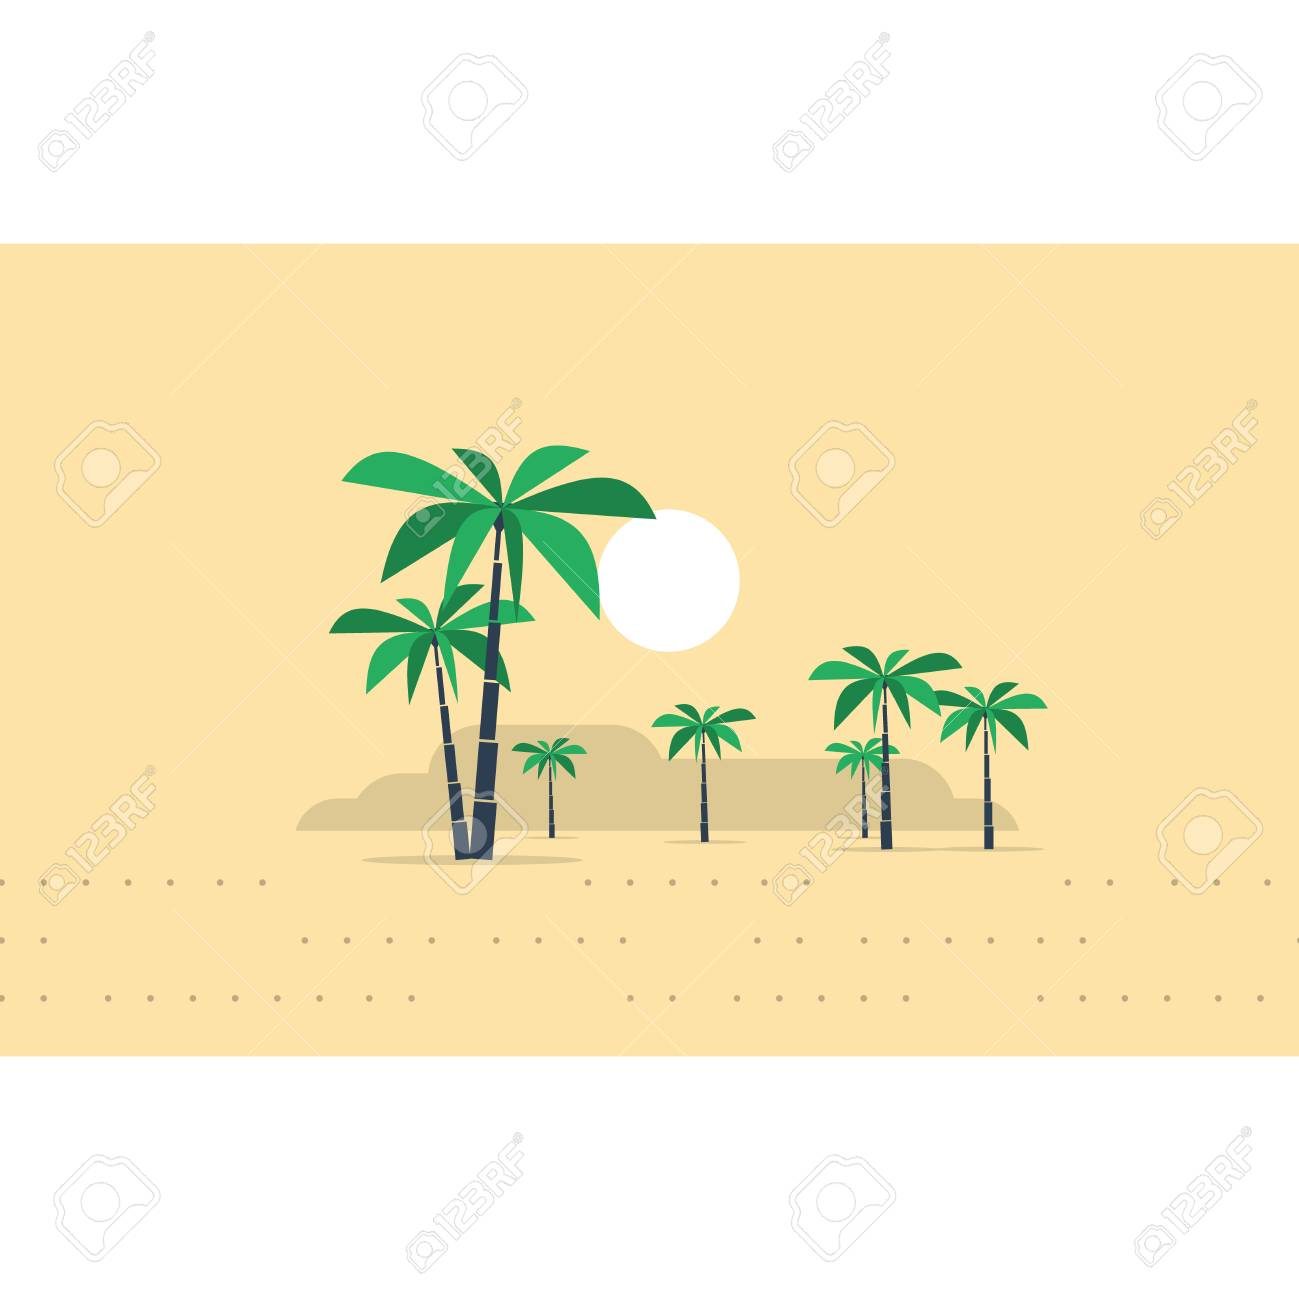 Palm trees in a desert - 53334897